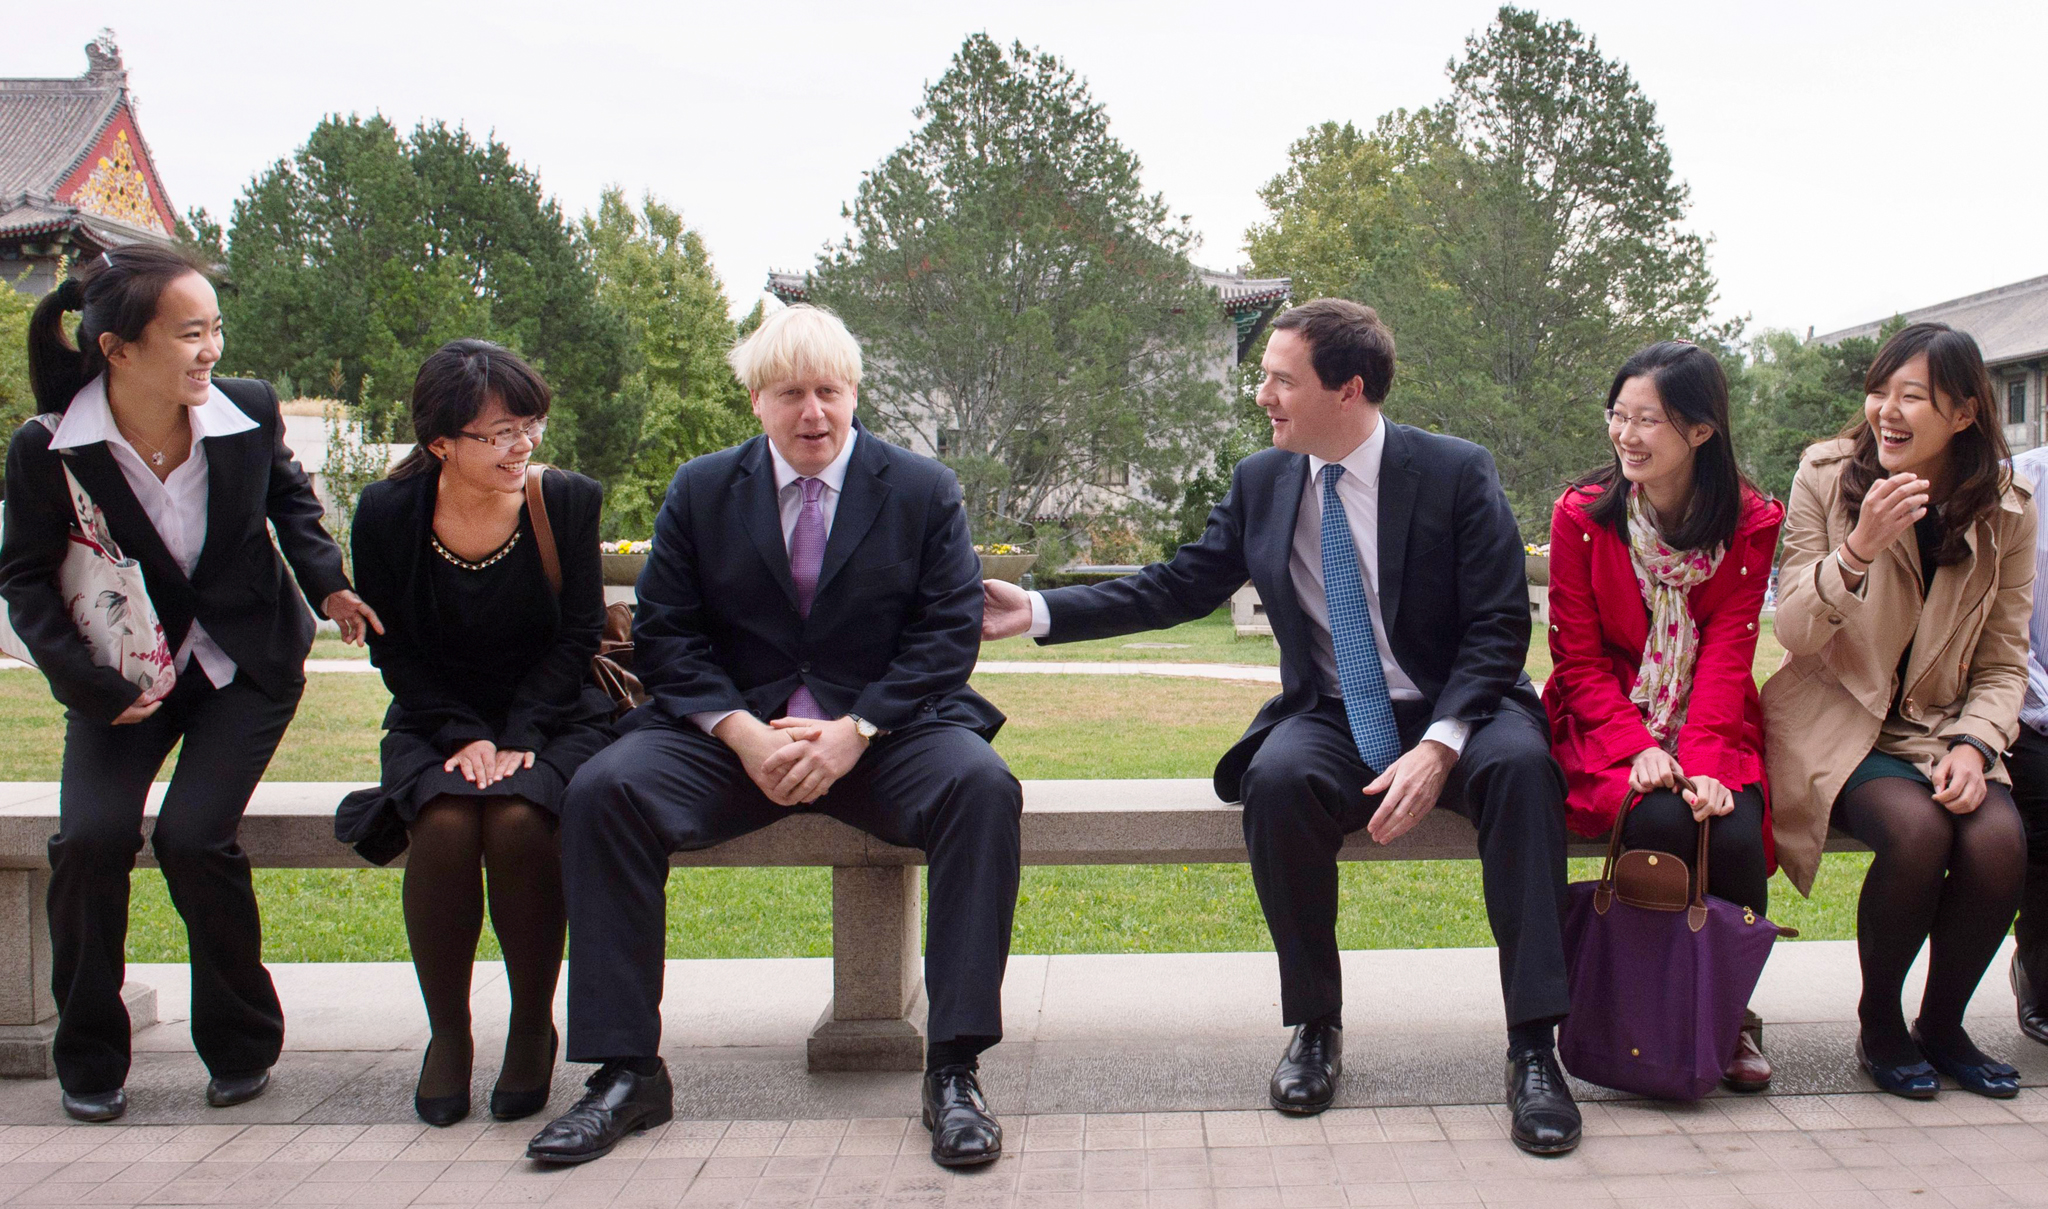 Mayor of London Boris Johnson and Chancellor of the Exchequer George Osborne meet students at Peking University in Beijing where they addressed and held a Q&A with staff and students.